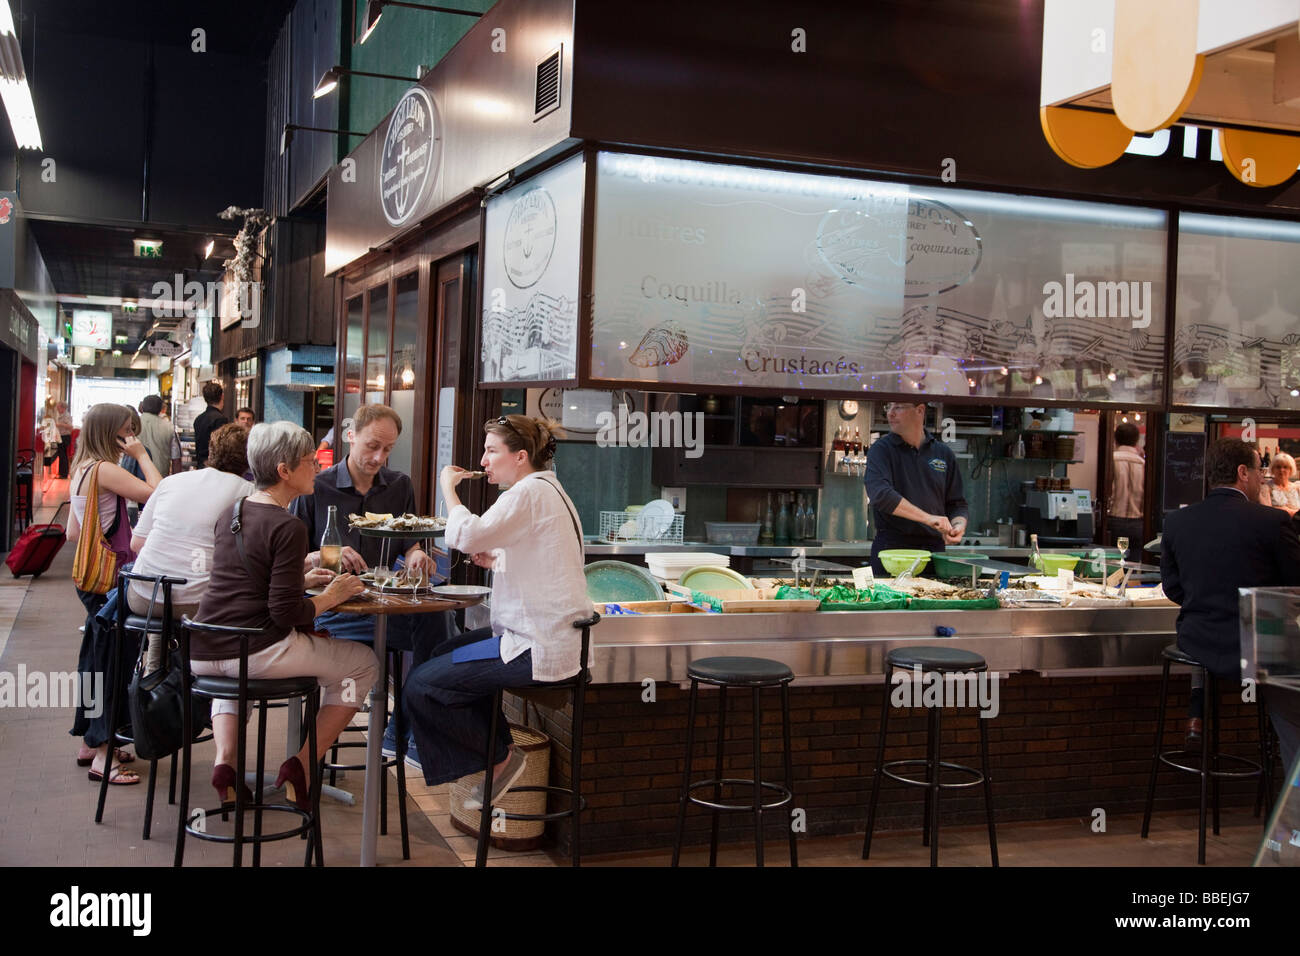 sea food restaurant in les halles de lyon paul bocuse gourmet market stock photo 24293479 alamy. Black Bedroom Furniture Sets. Home Design Ideas